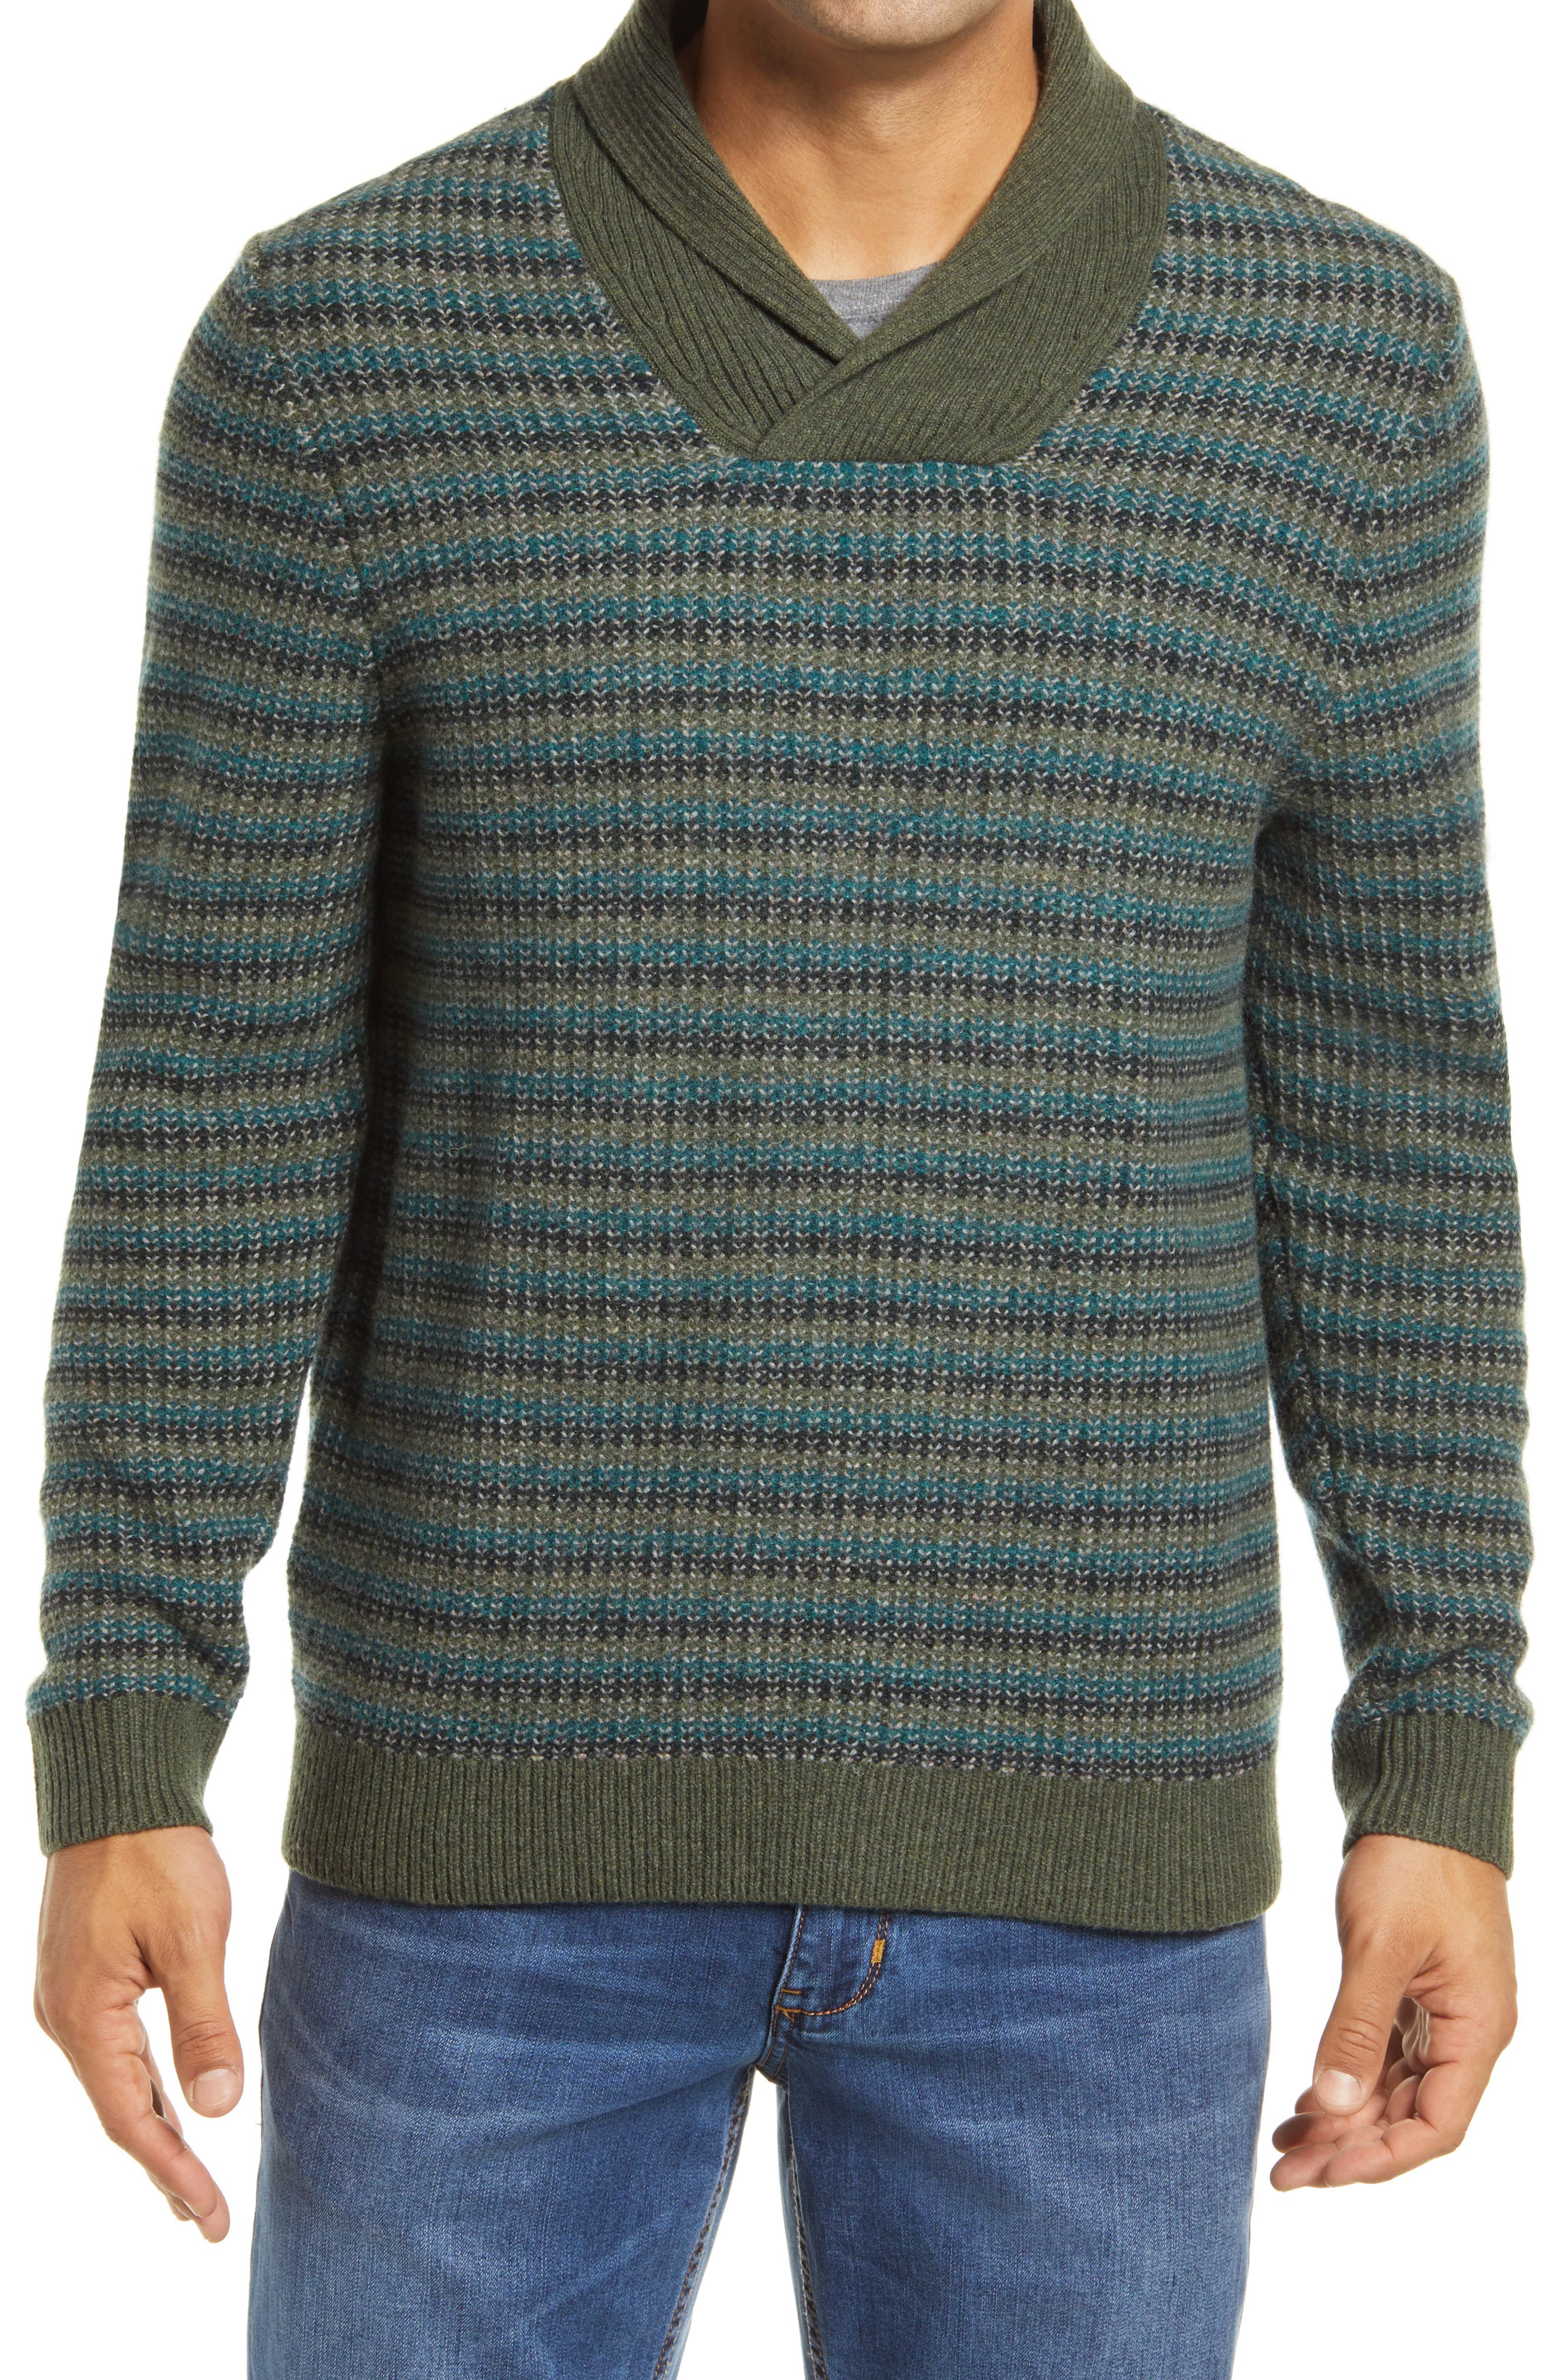 60s 70s Men's Jackets & Sweaters Mens Tommy Bahama Bungalow Beach Shawl Merino Wool Sweater $198.00 AT vintagedancer.com